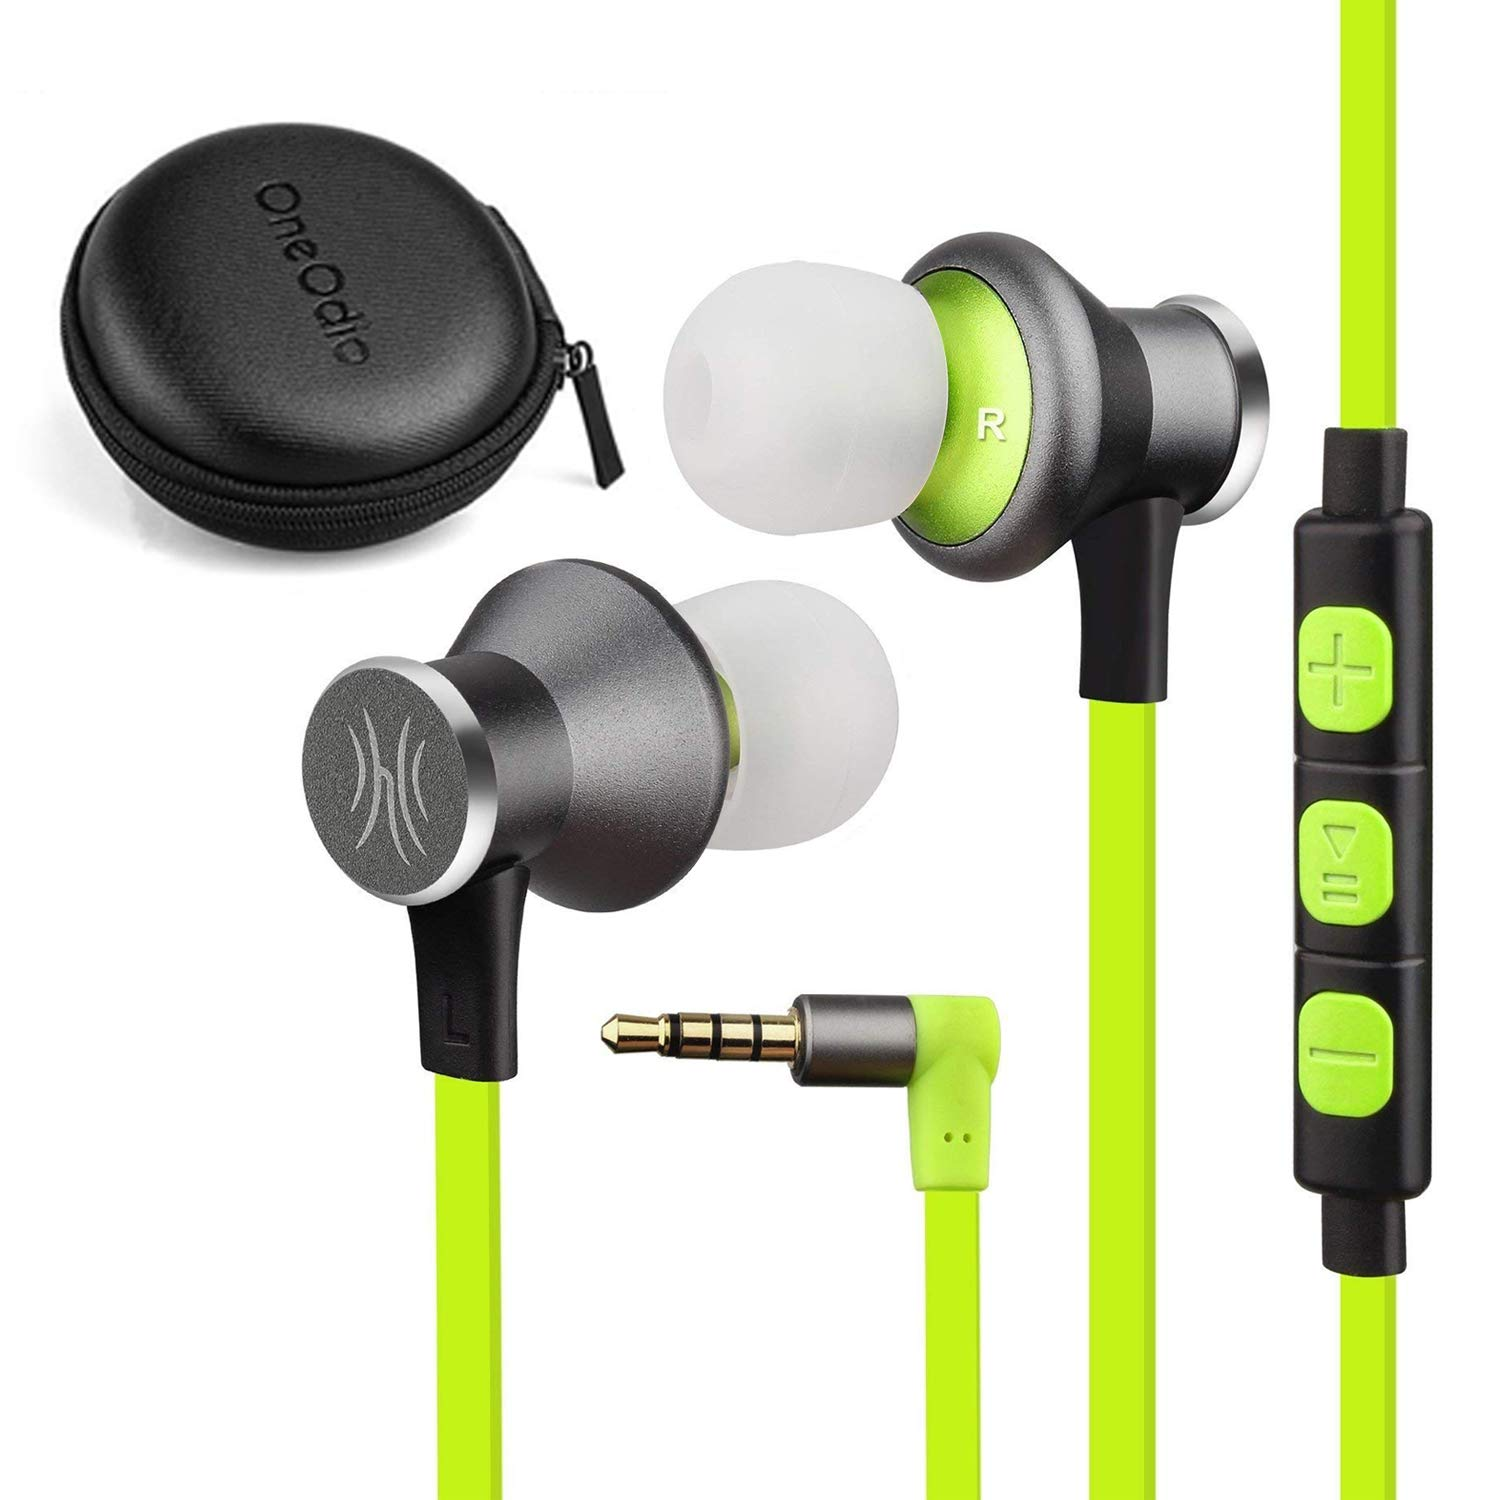 OneOdio Earphone With Wireless Stereo Earbuds with Mic 360 ° Magnetic Attraction CVC 6.0 for Gyms and for iPhone Android Smartphones (green)